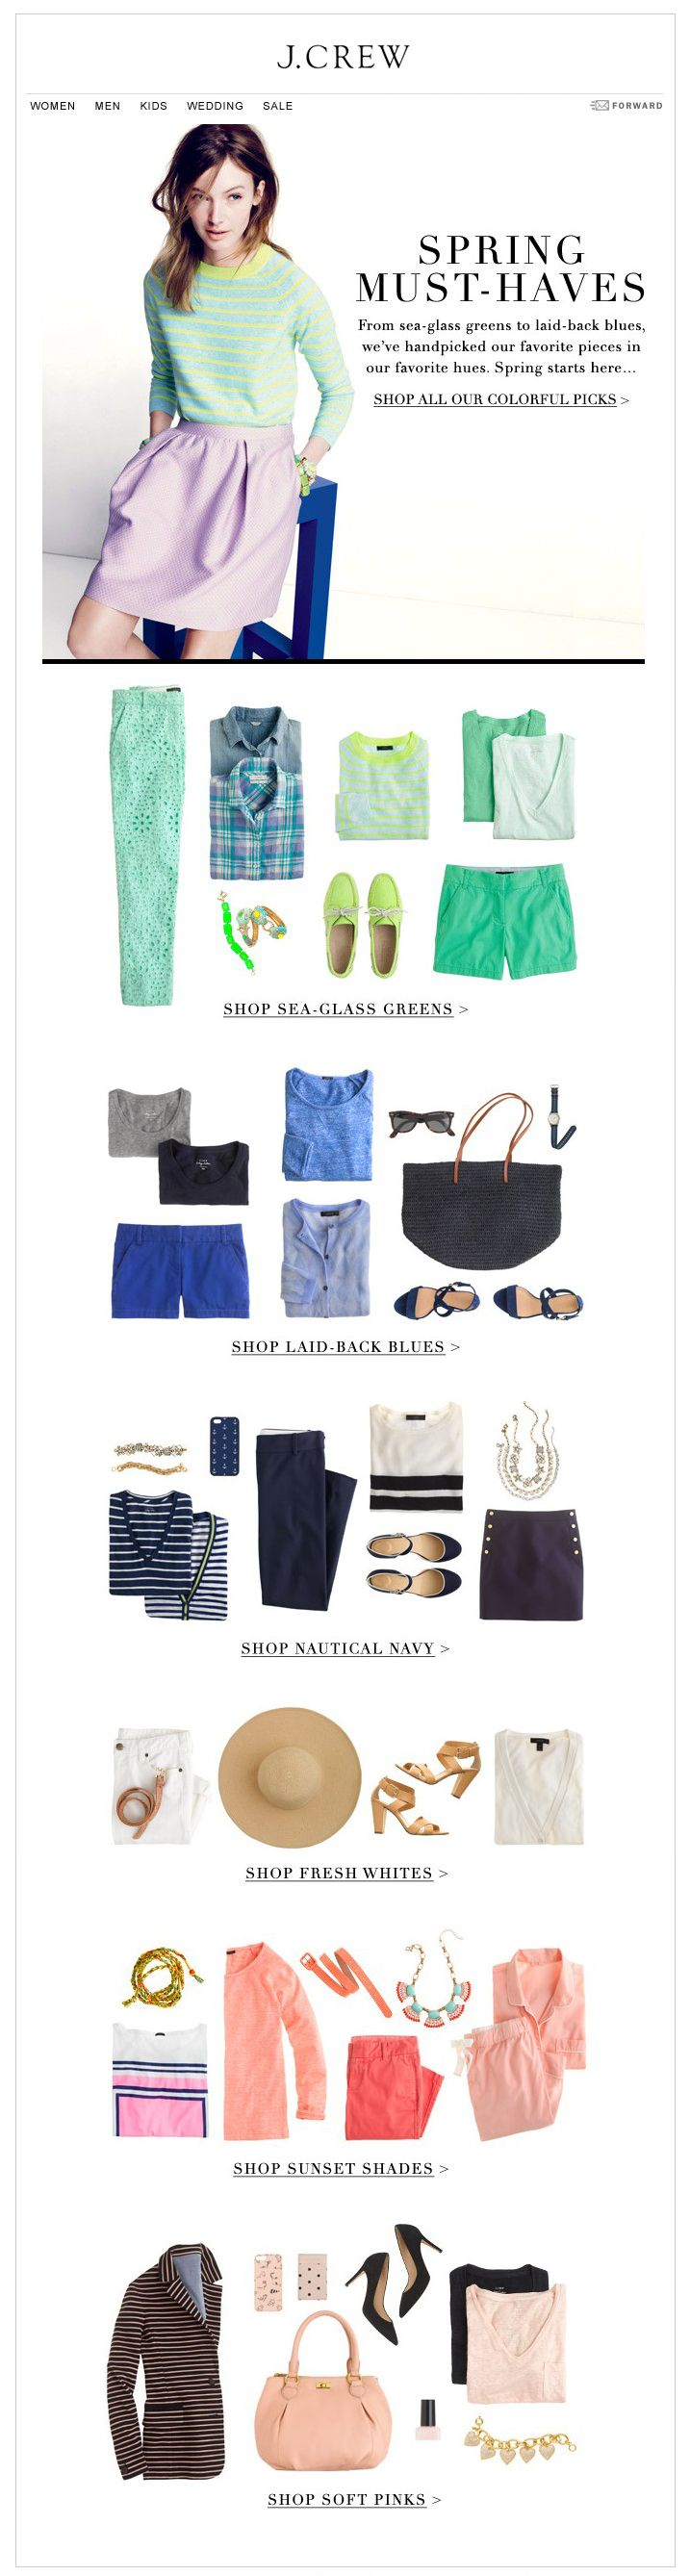 J. Crew email template, minimal, white space